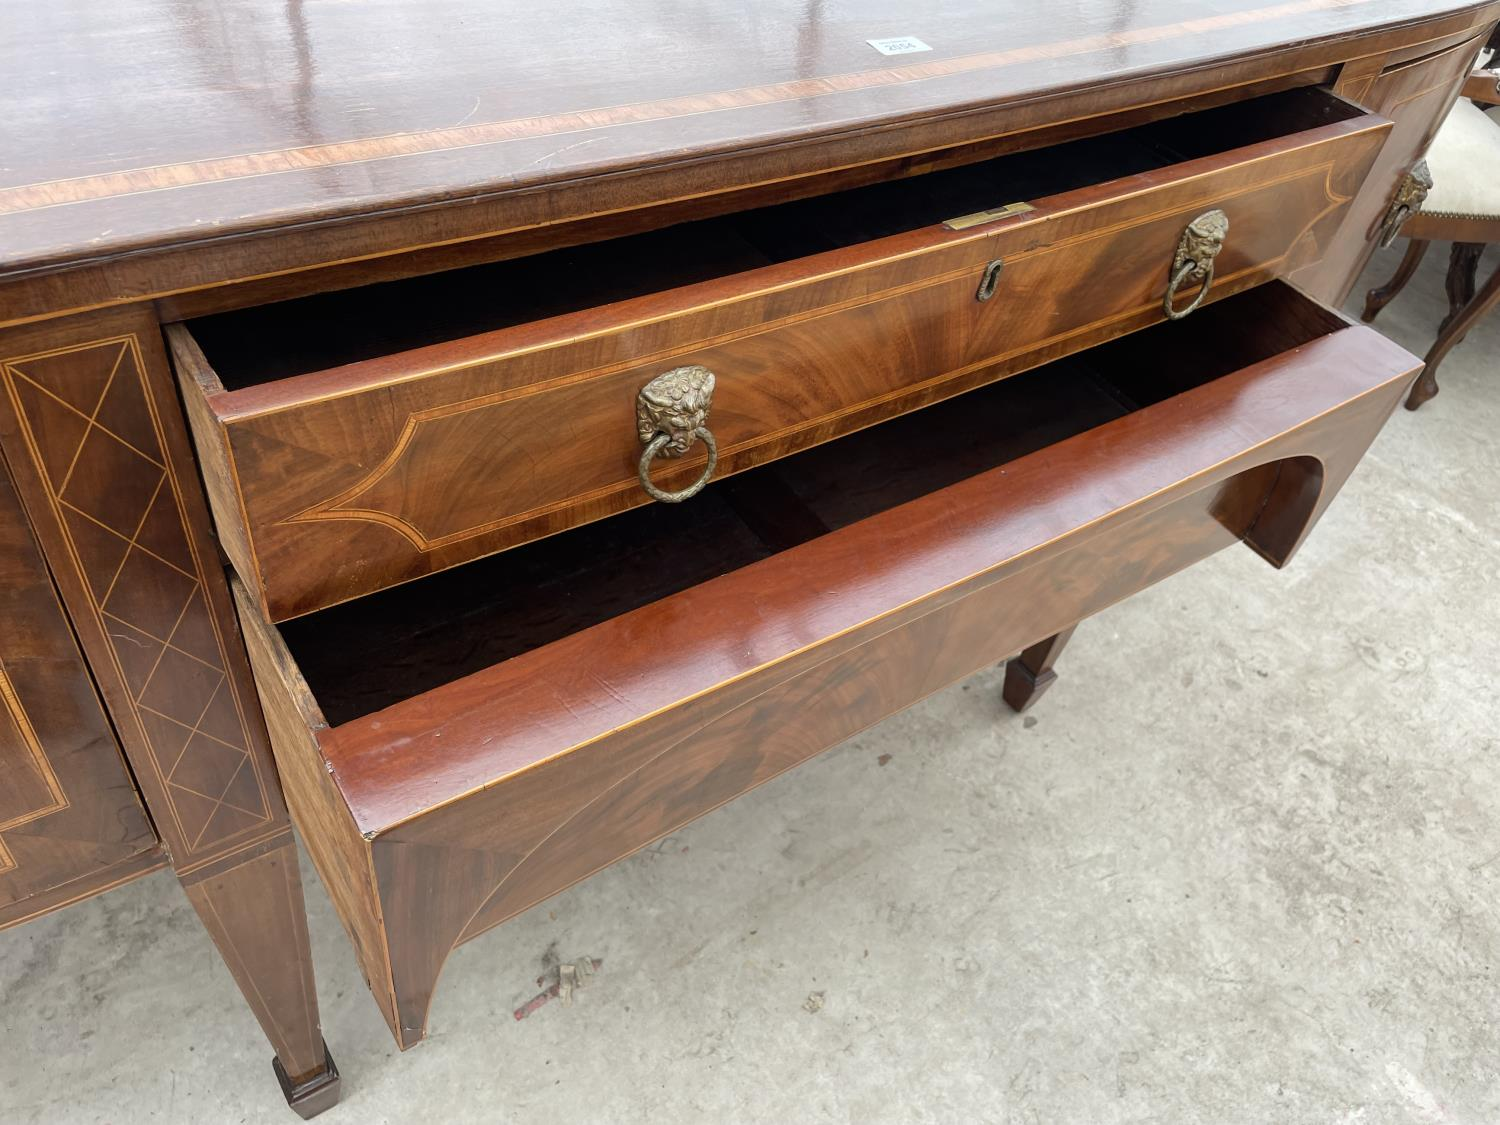 """A 19TH CENTURY MAHOGANY BOWFRONTED SIDEBOARD ON TAPERED LEGS, WITH SPADE FEET, 78"""" - Image 8 of 10"""